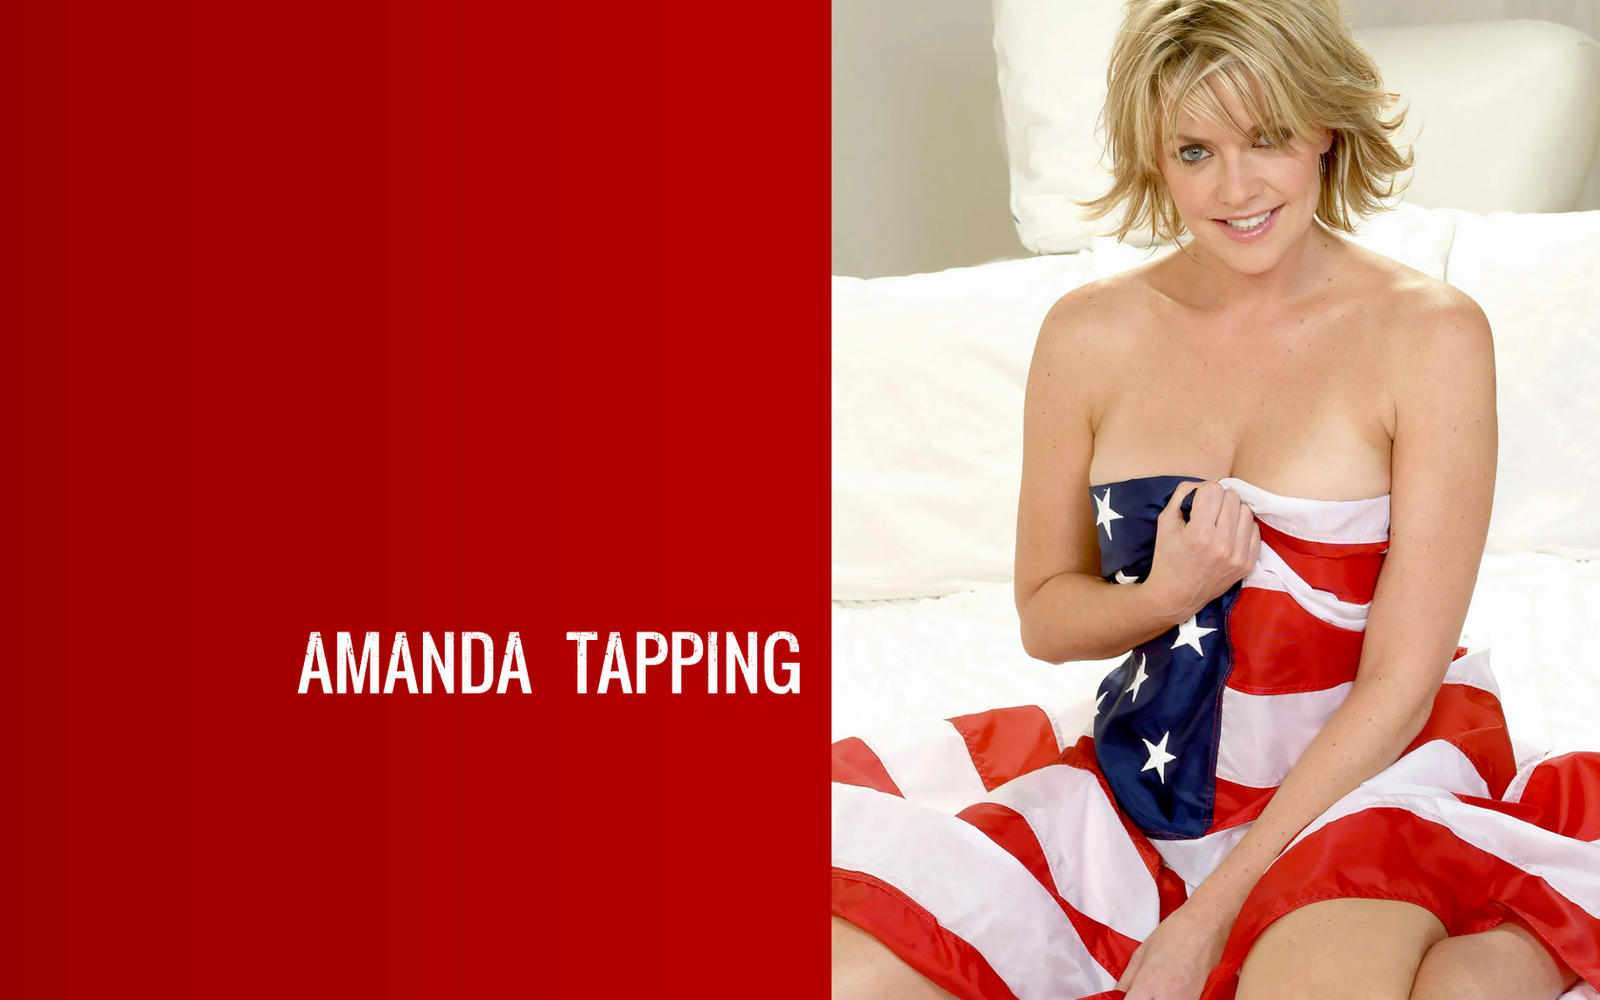 fucked-is-amanda-tapping-a-pornstar-naked